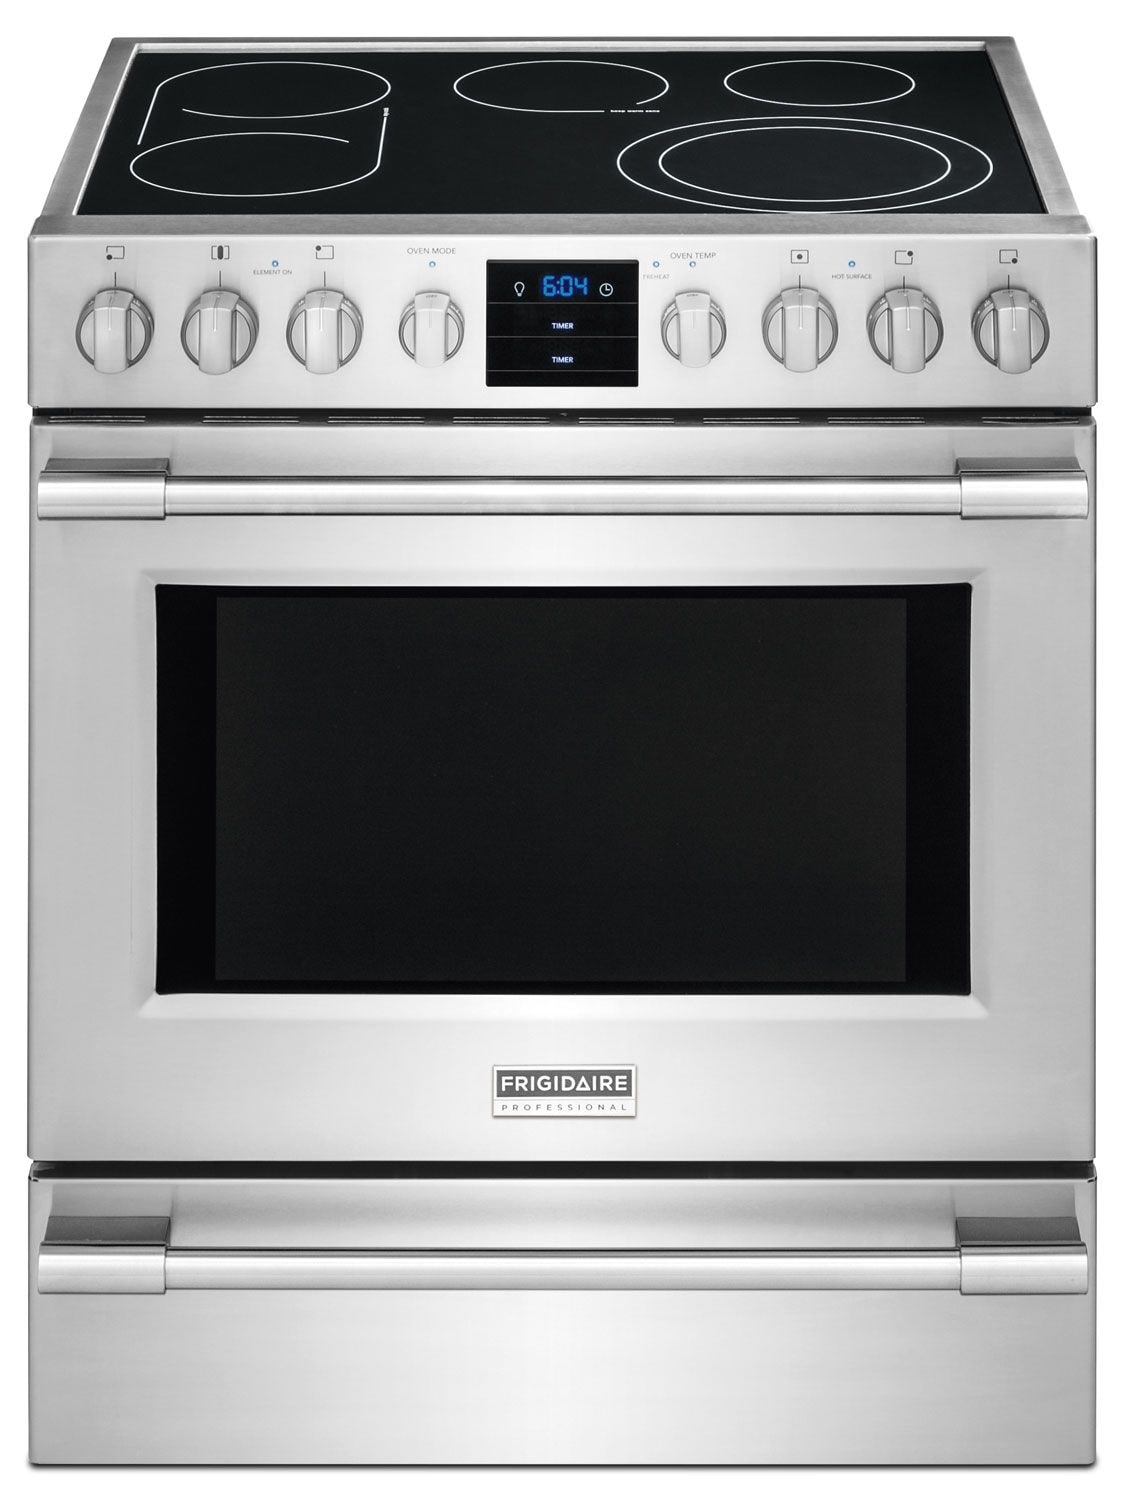 Cooking Products - Frigidaire Professional 5.1 Cu. Ft. Slide-In Electric Range - Stainless Steel